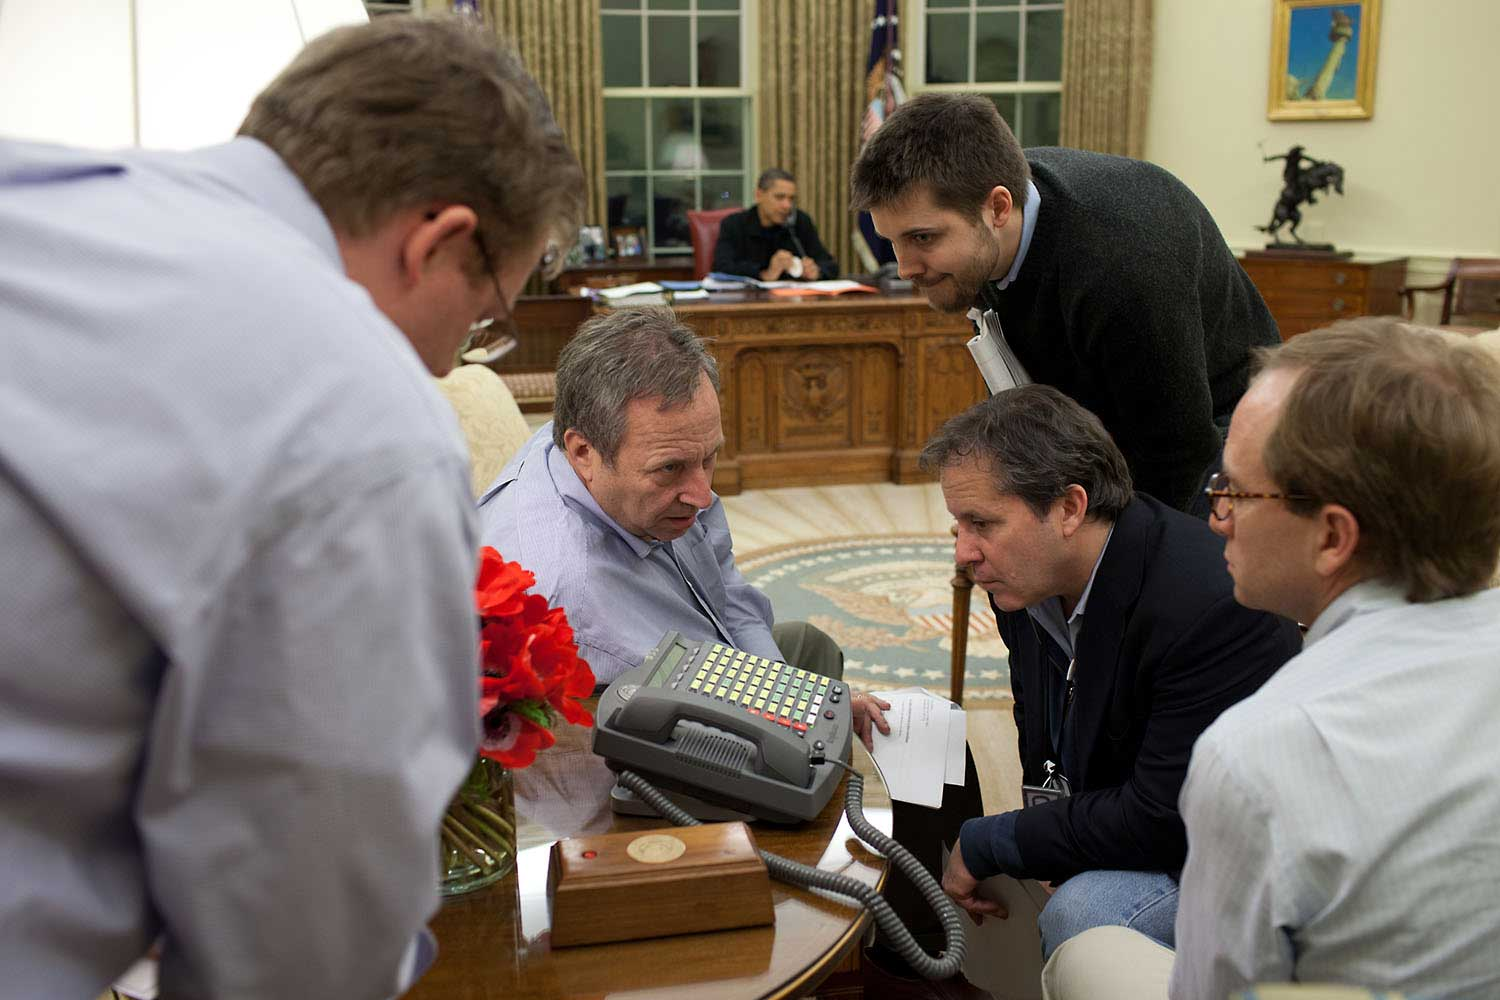 On Sunday night, March 29, 2009, aides listen to a speaker phone as the President made calls to alert officials about his plan to set deadlines for General Motors and Chrysler overhauls that were to be announced the next day.